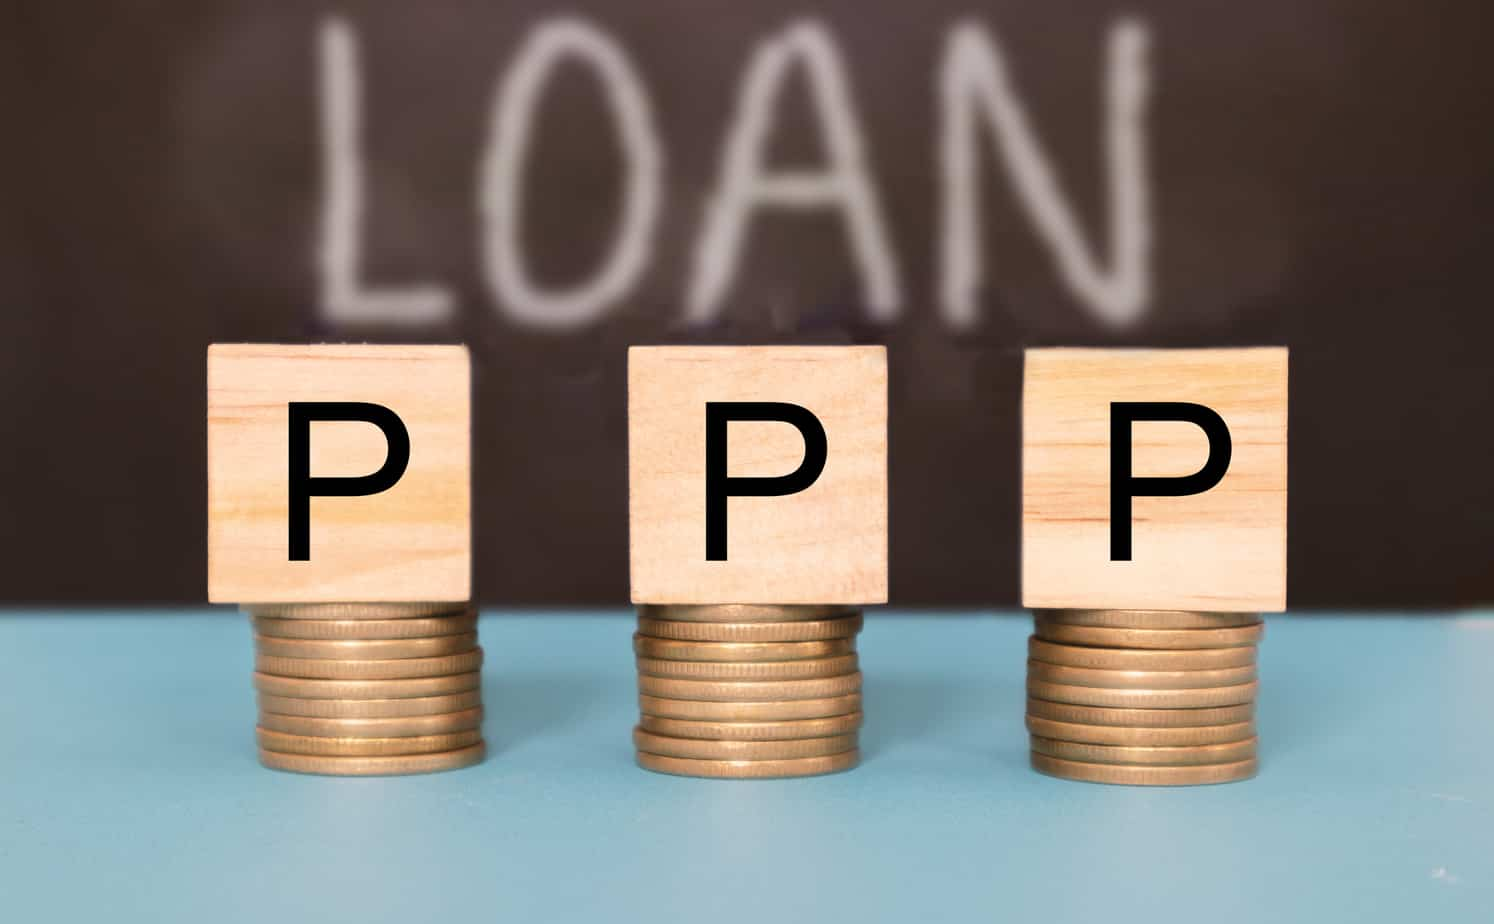 ppp-or-paycheck-protection-program-business-loan-as-coronavirus-or-covid-19-aid-concept-179747423